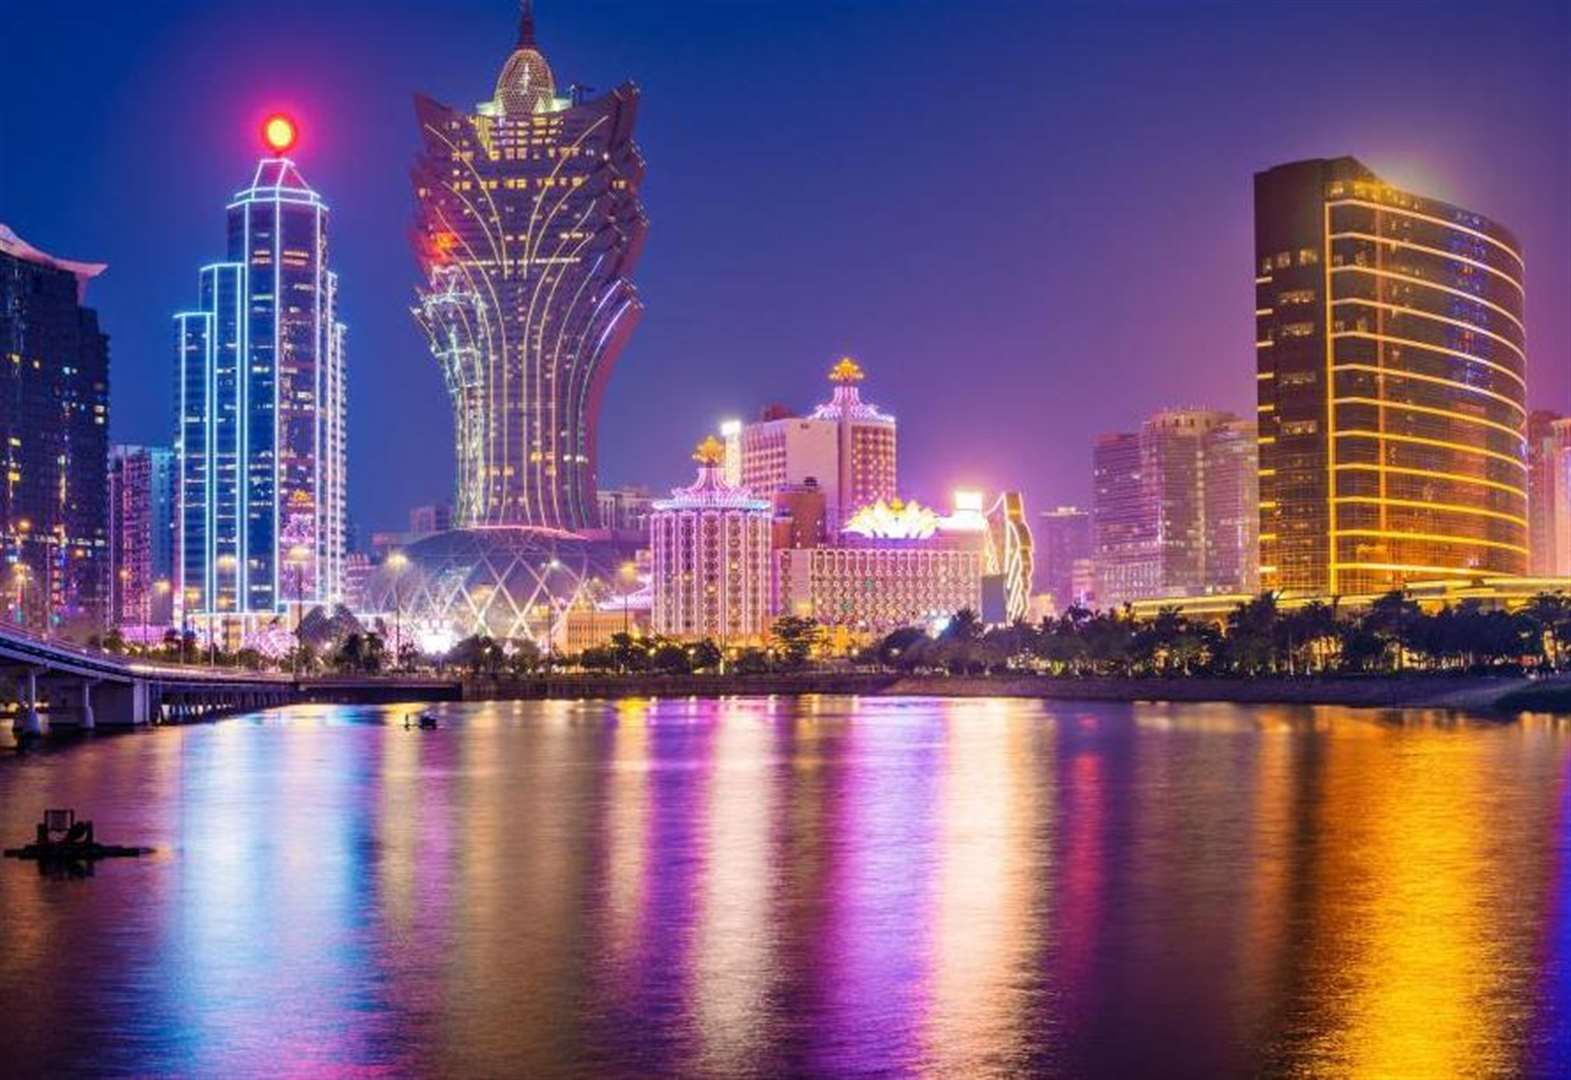 Take a punt on magical Macao